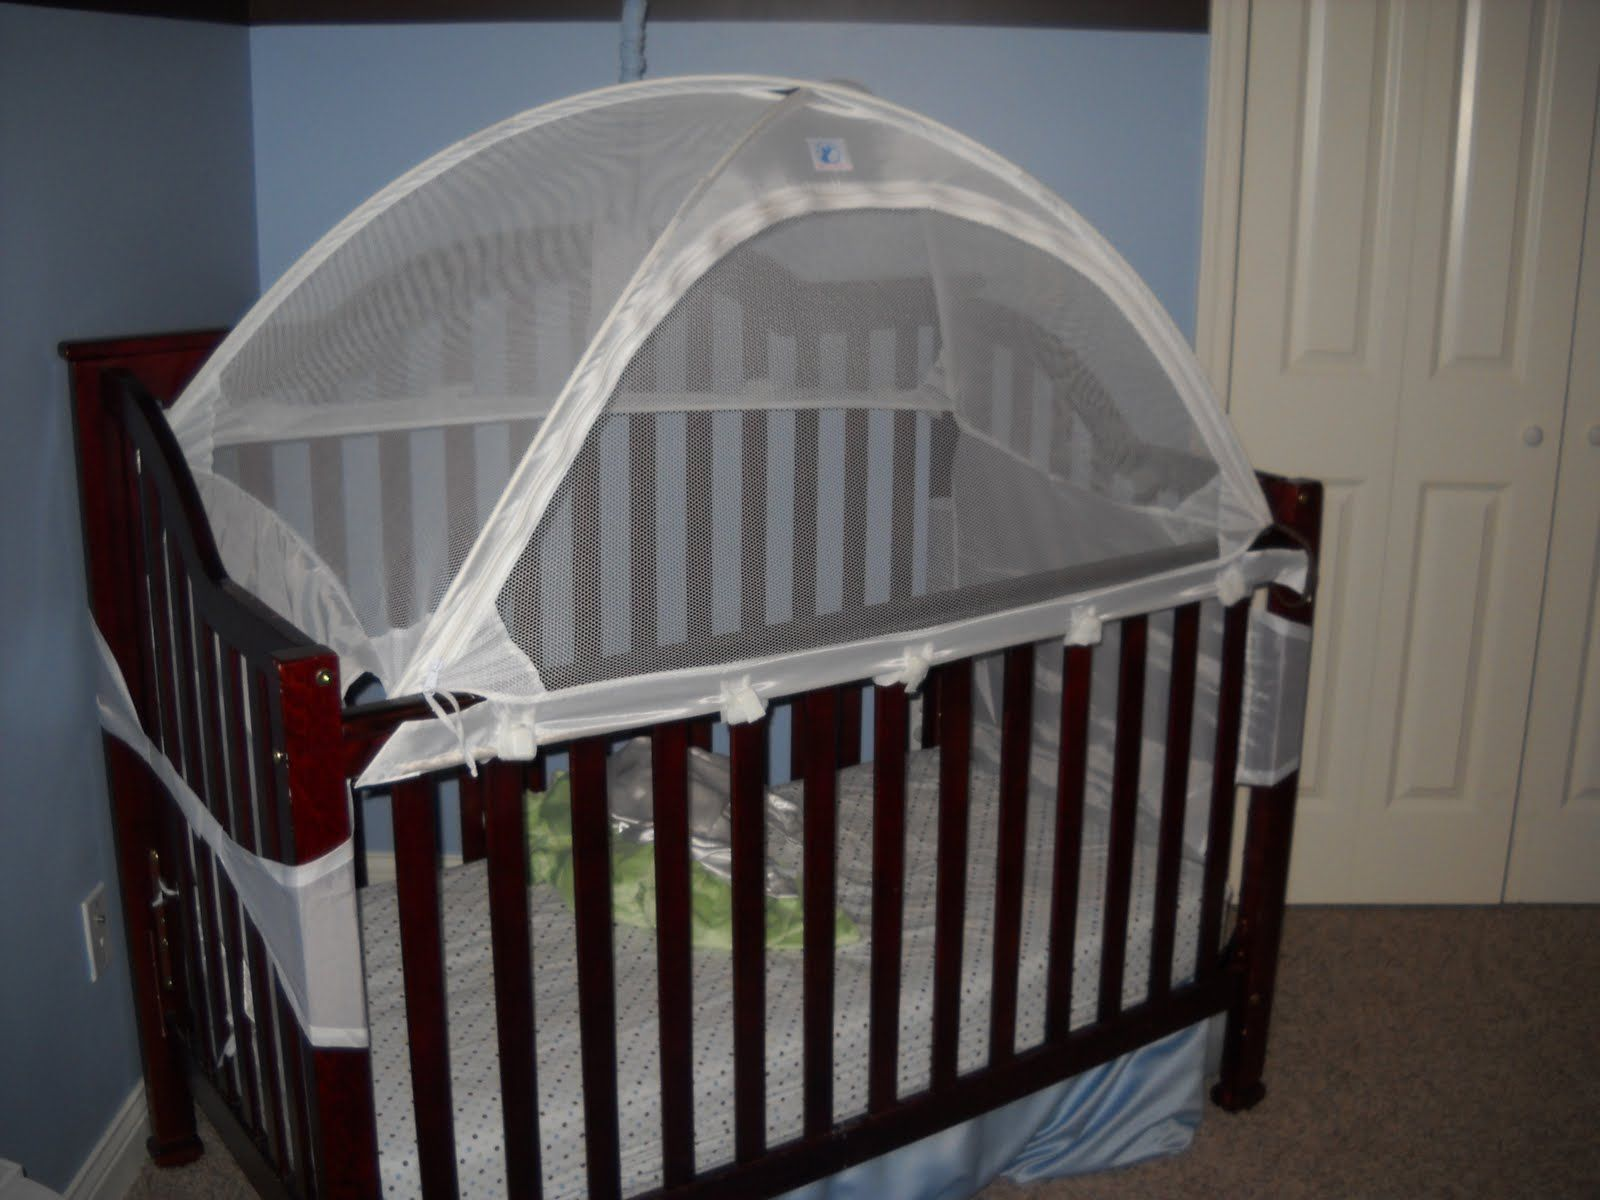 Alternatives to crib for babies - Brown Wooden Baby Crib With Small Black Round Pattern White Mattress Accessories And Transparent Style White